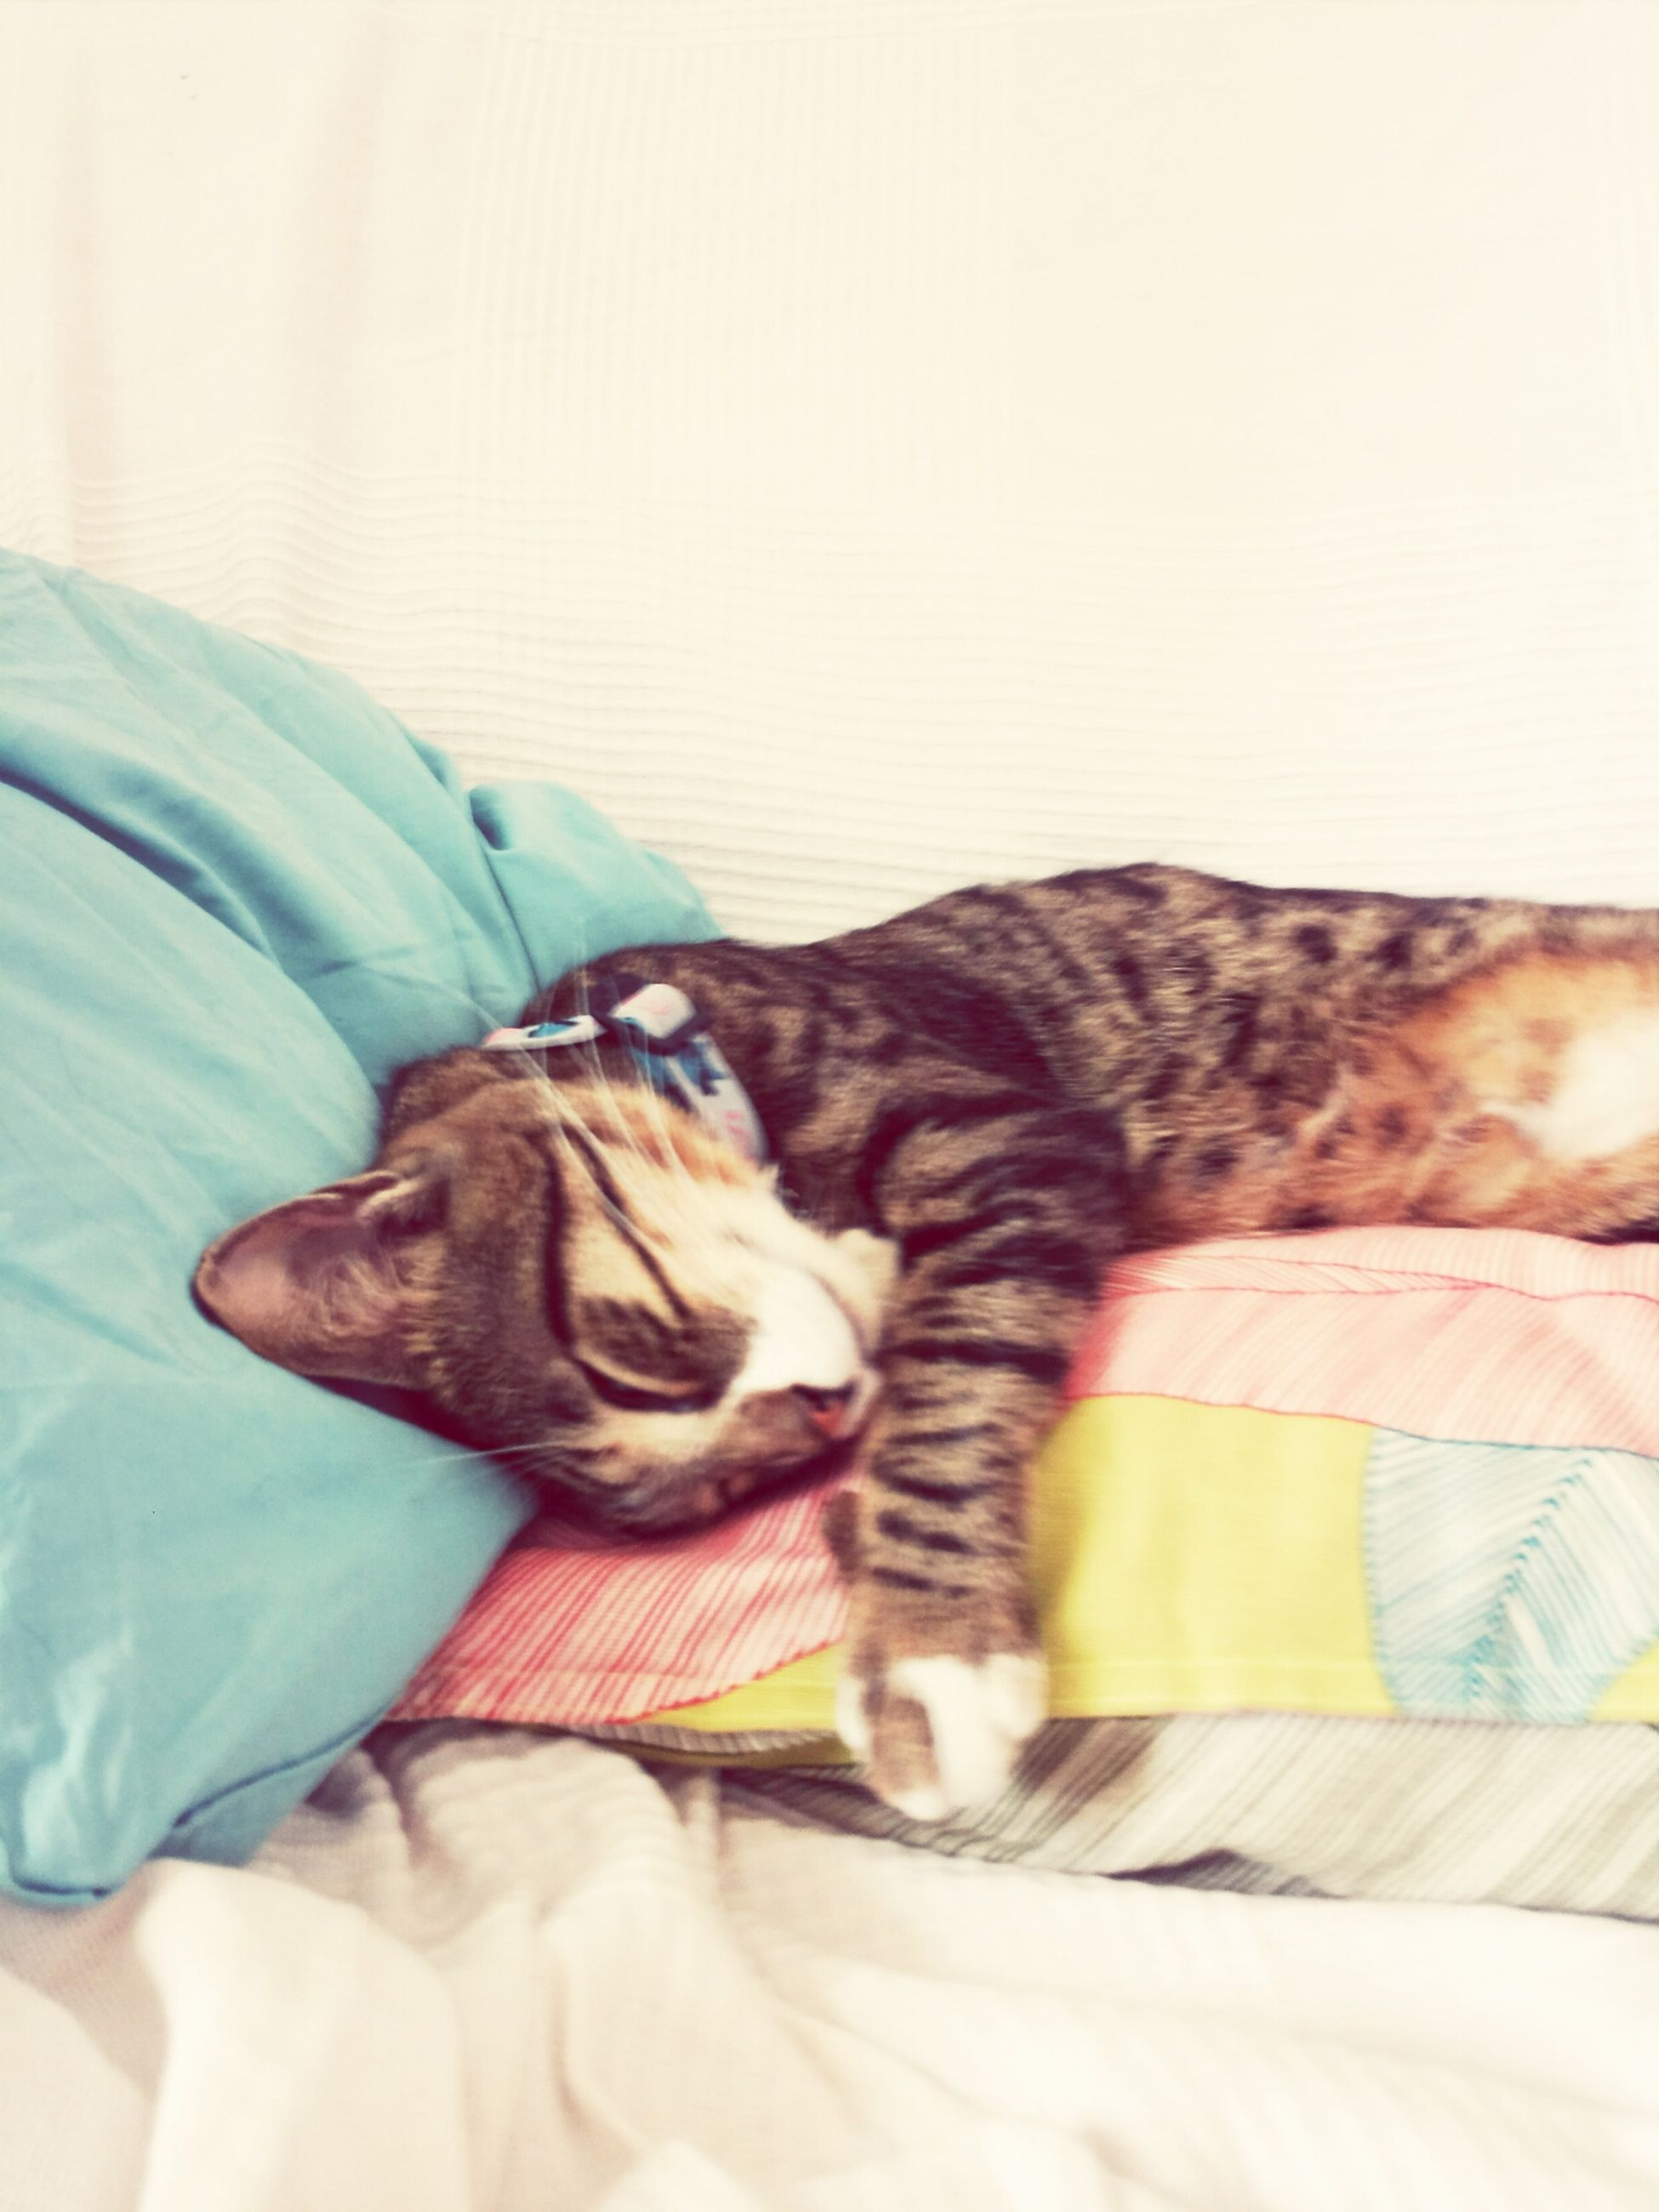 domestic animals, pets, animal themes, mammal, one animal, indoors, dog, relaxation, bed, resting, lying down, sofa, home interior, sleeping, comfortable, domestic cat, cat, full length, blanket, bedroom